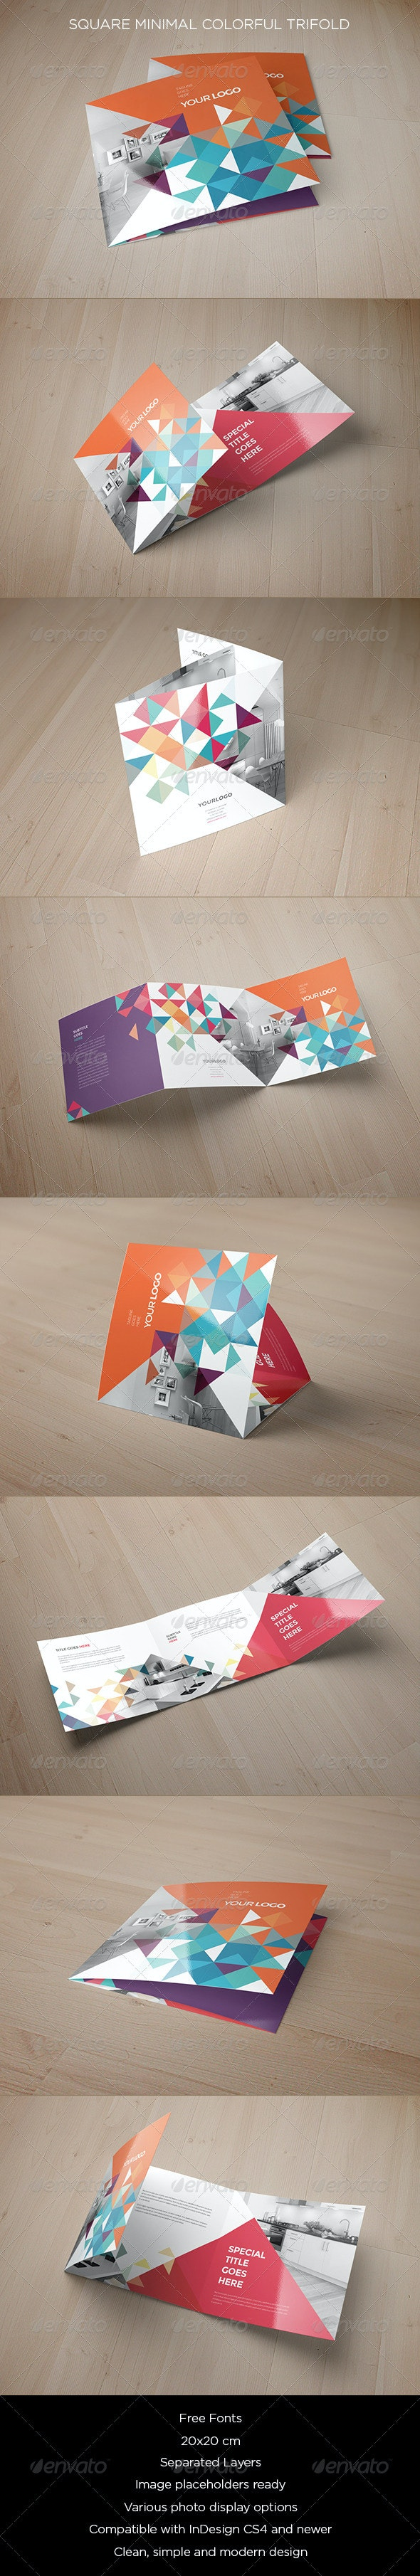 Square Minimal Colorful Trifold - Brochures Print Templates